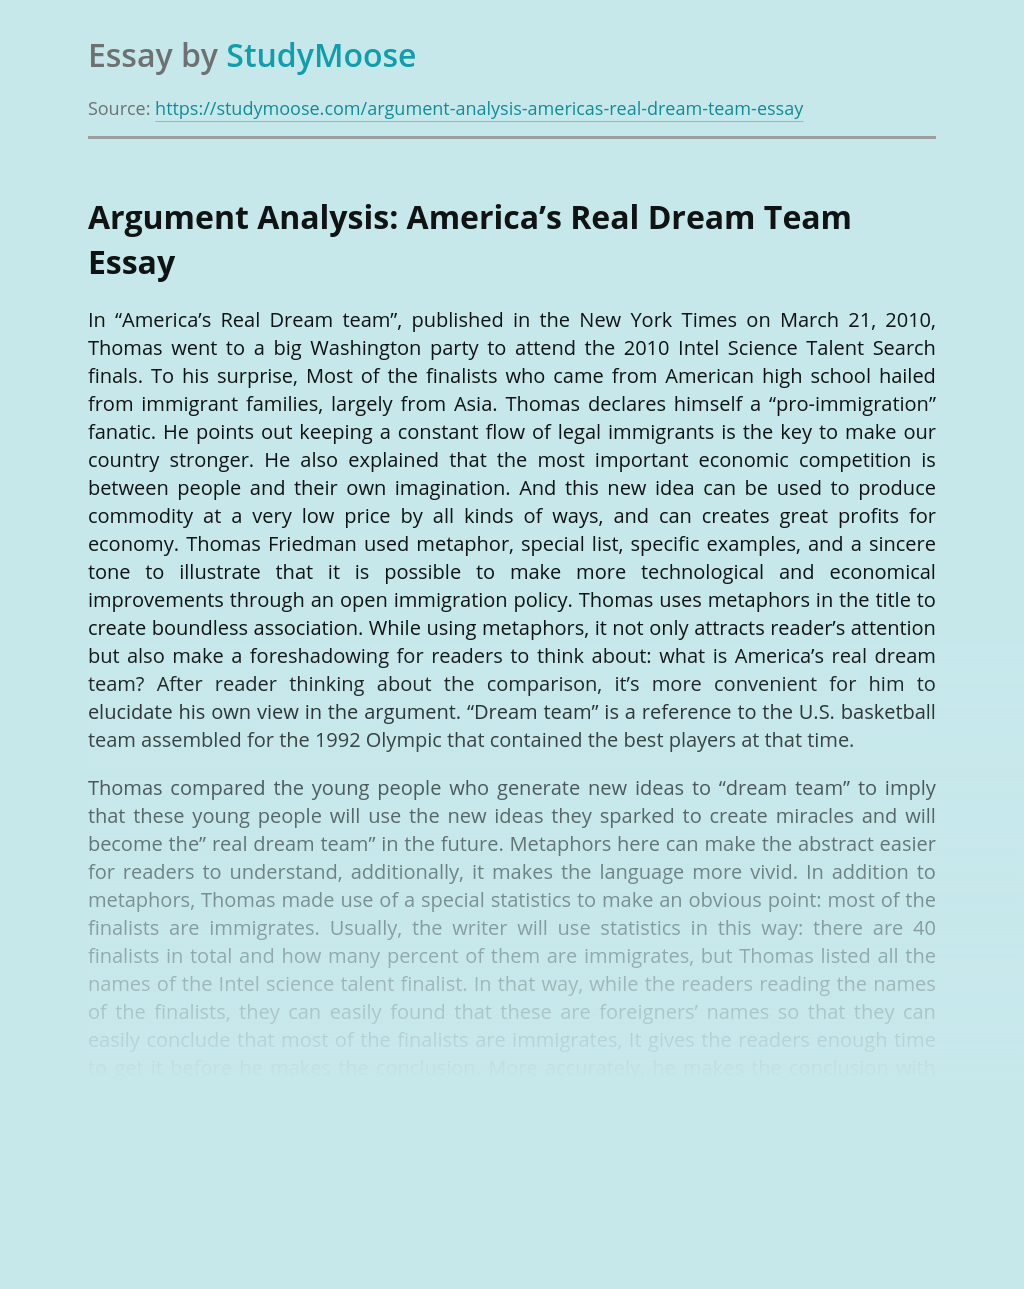 Argument Analysis: America's Real Dream Team